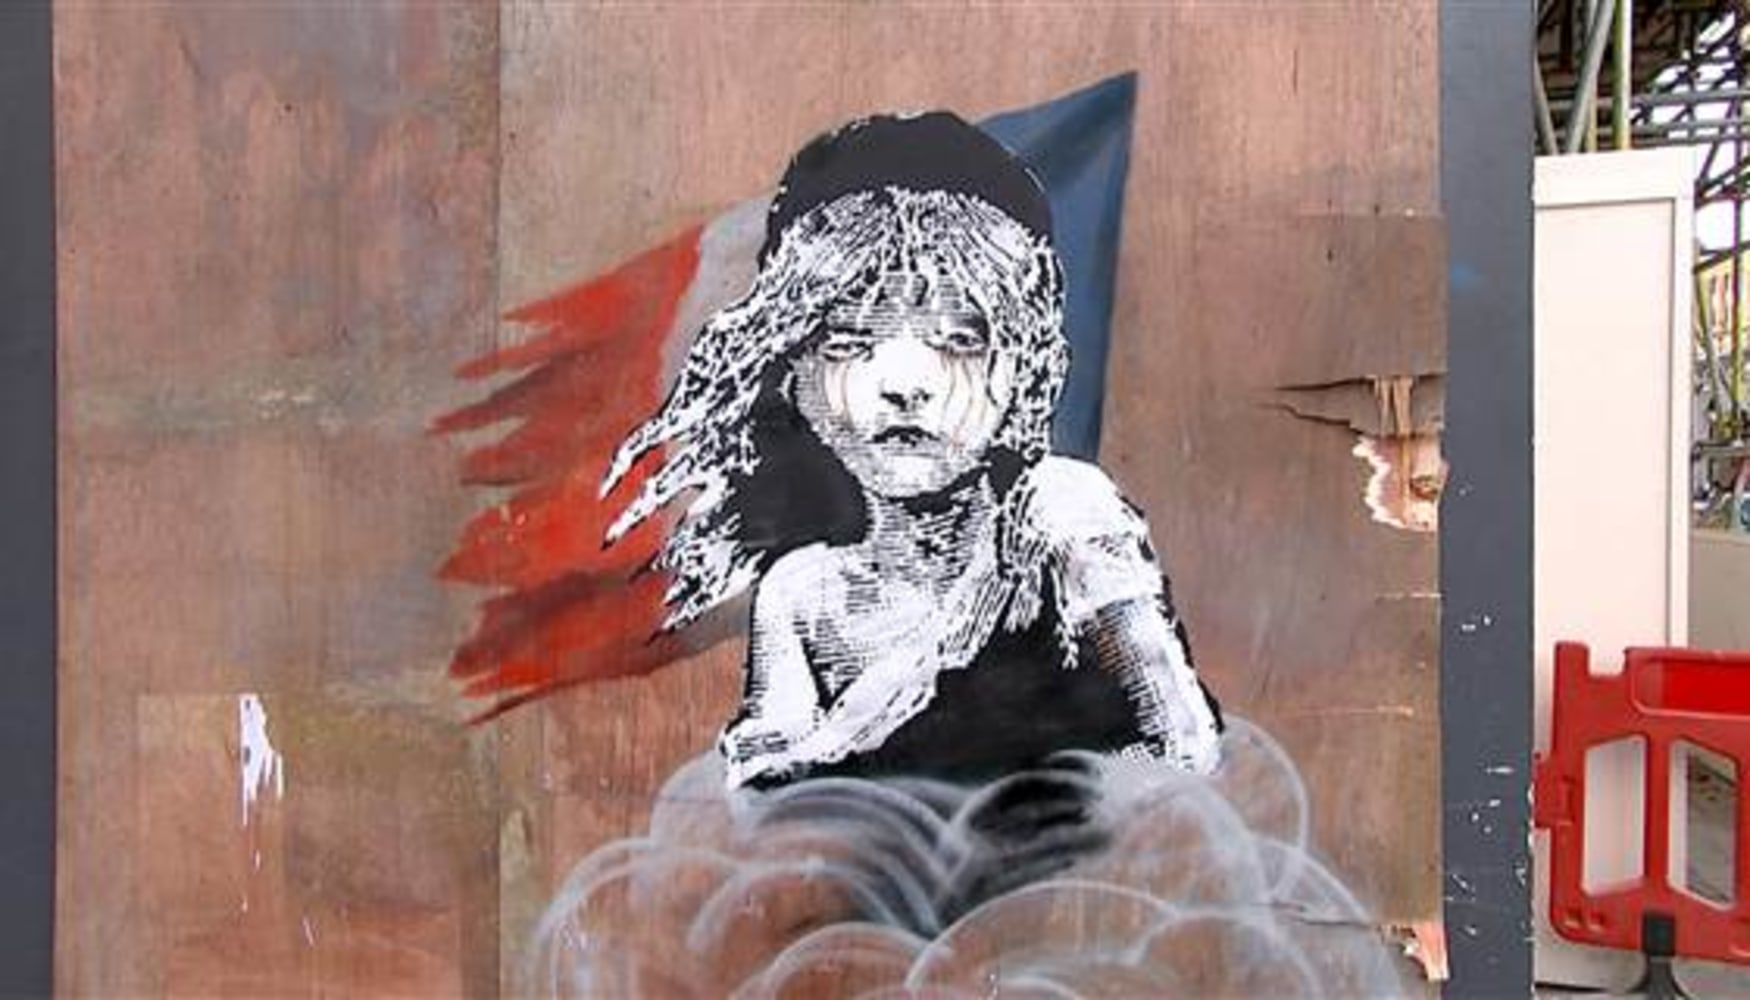 New bansky artwork in london hits a nerve and is boarded for Banksy mural painted over